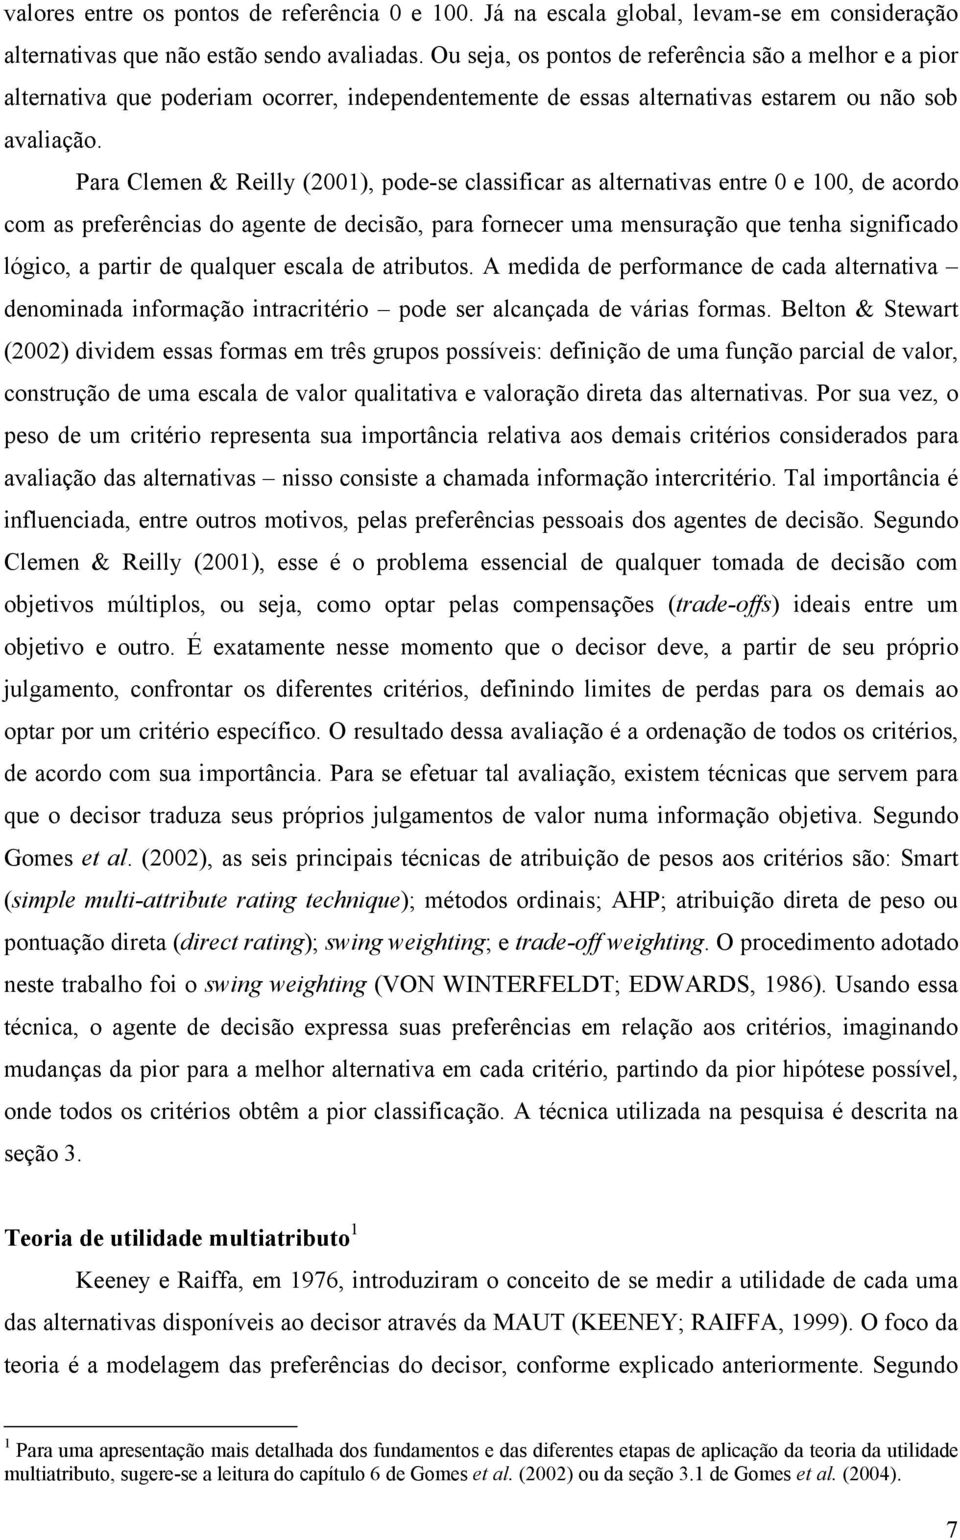 Para Clemen & Reilly (2001), pode-se classificar as alternativas entre 0 e 100, de acordo com as preferências do agente de decisão, para fornecer uma mensuração que tenha significado lógico, a partir